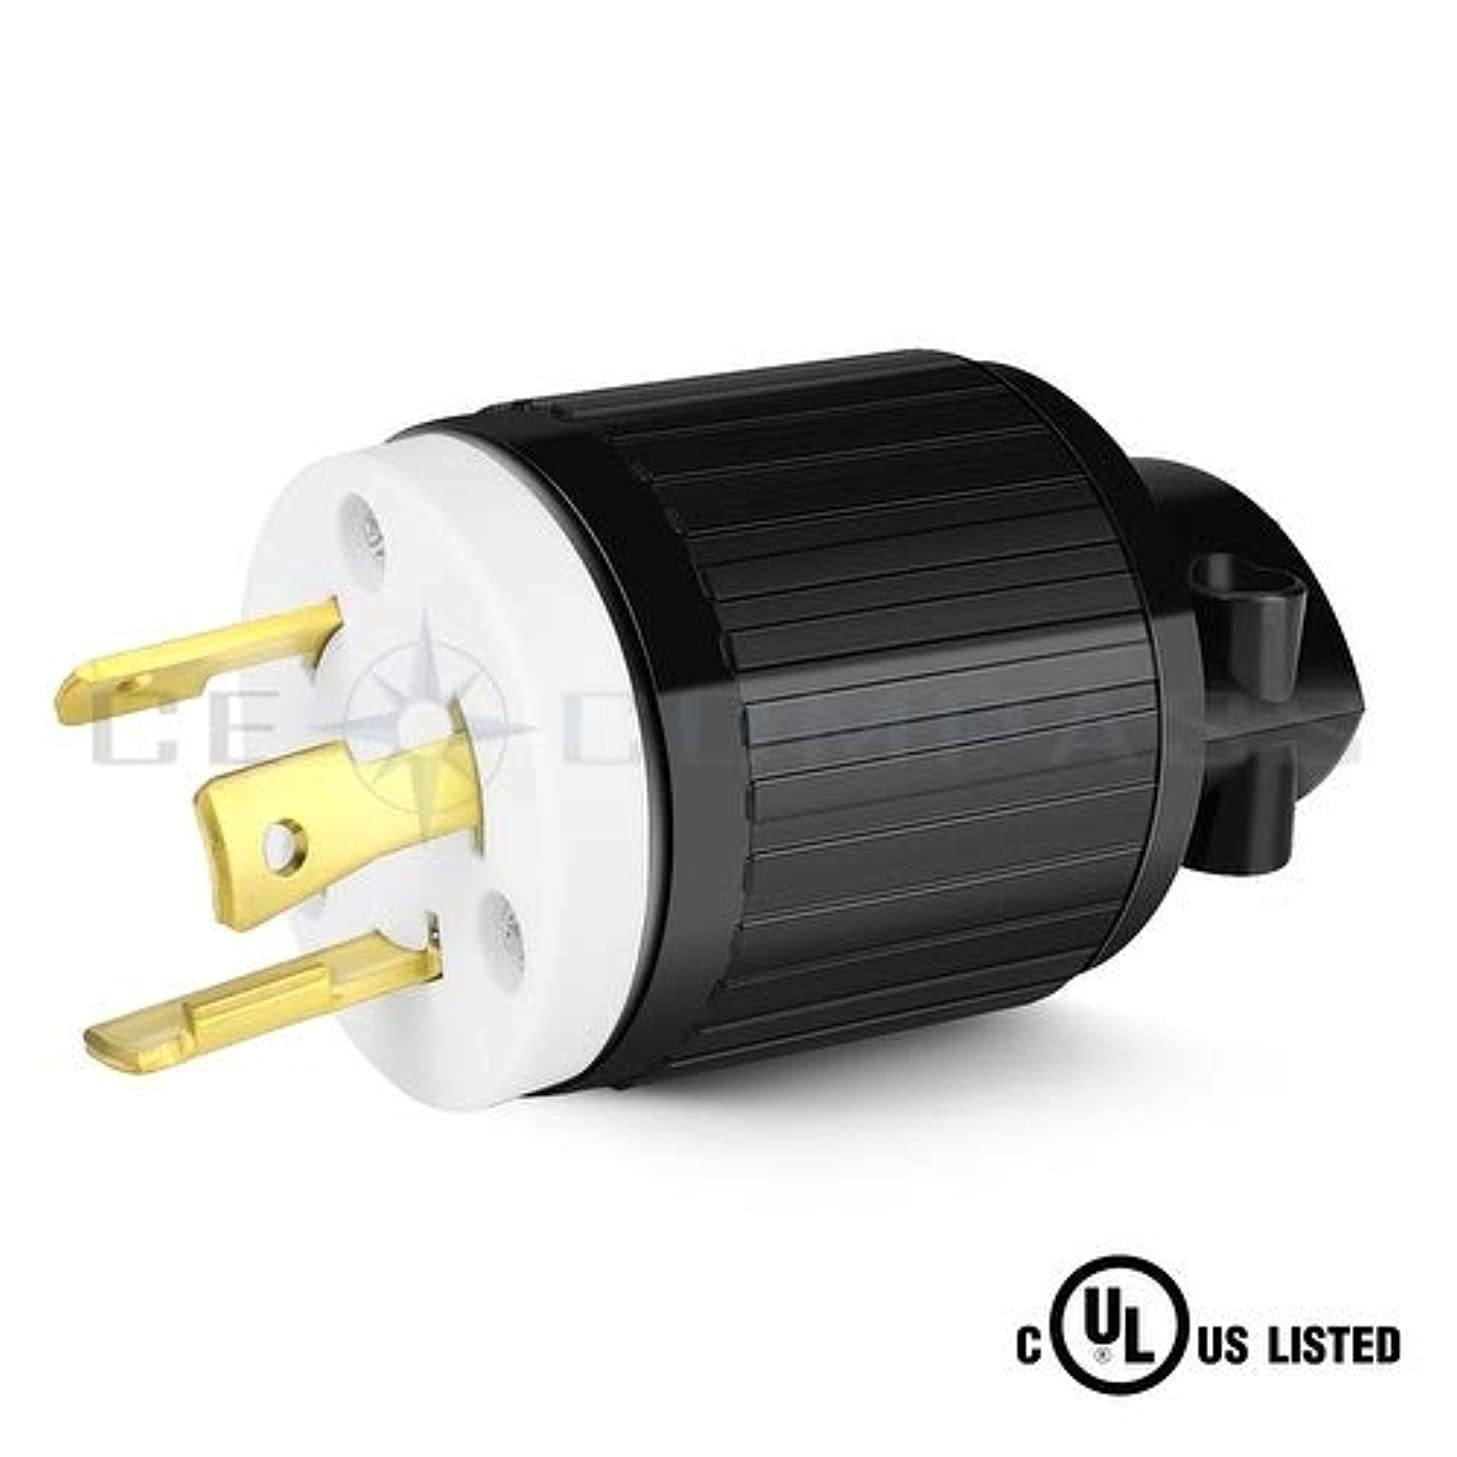 TNP NEMA L6-30P Twist Lock Electrical Plug 30 Amp 250 Volt 2 Pole 3 Wire 2P 3W Industrial Grade Locking Male Plug Connector Adapter Grounding for Generator, Transfer Switches RV Trailer, UL Listed